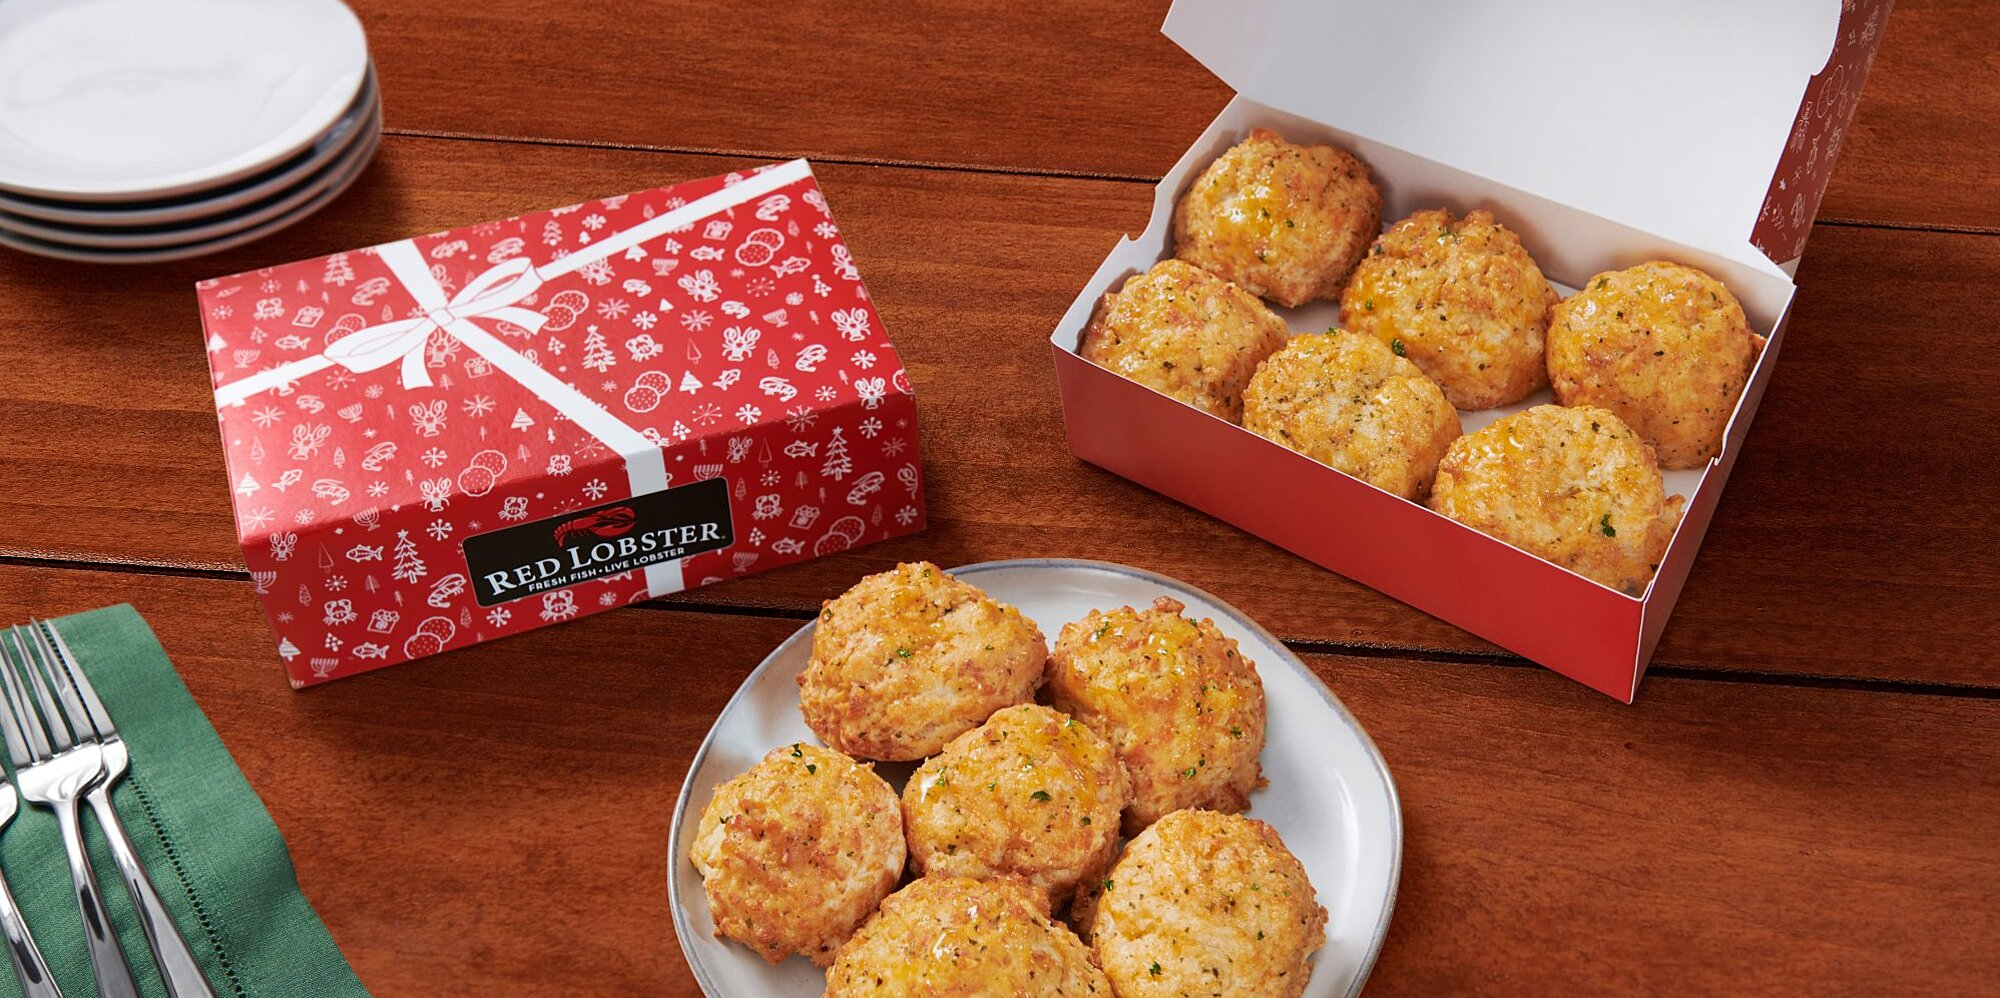 red lobster is offering cheddar bay biscuit gift boxes for the